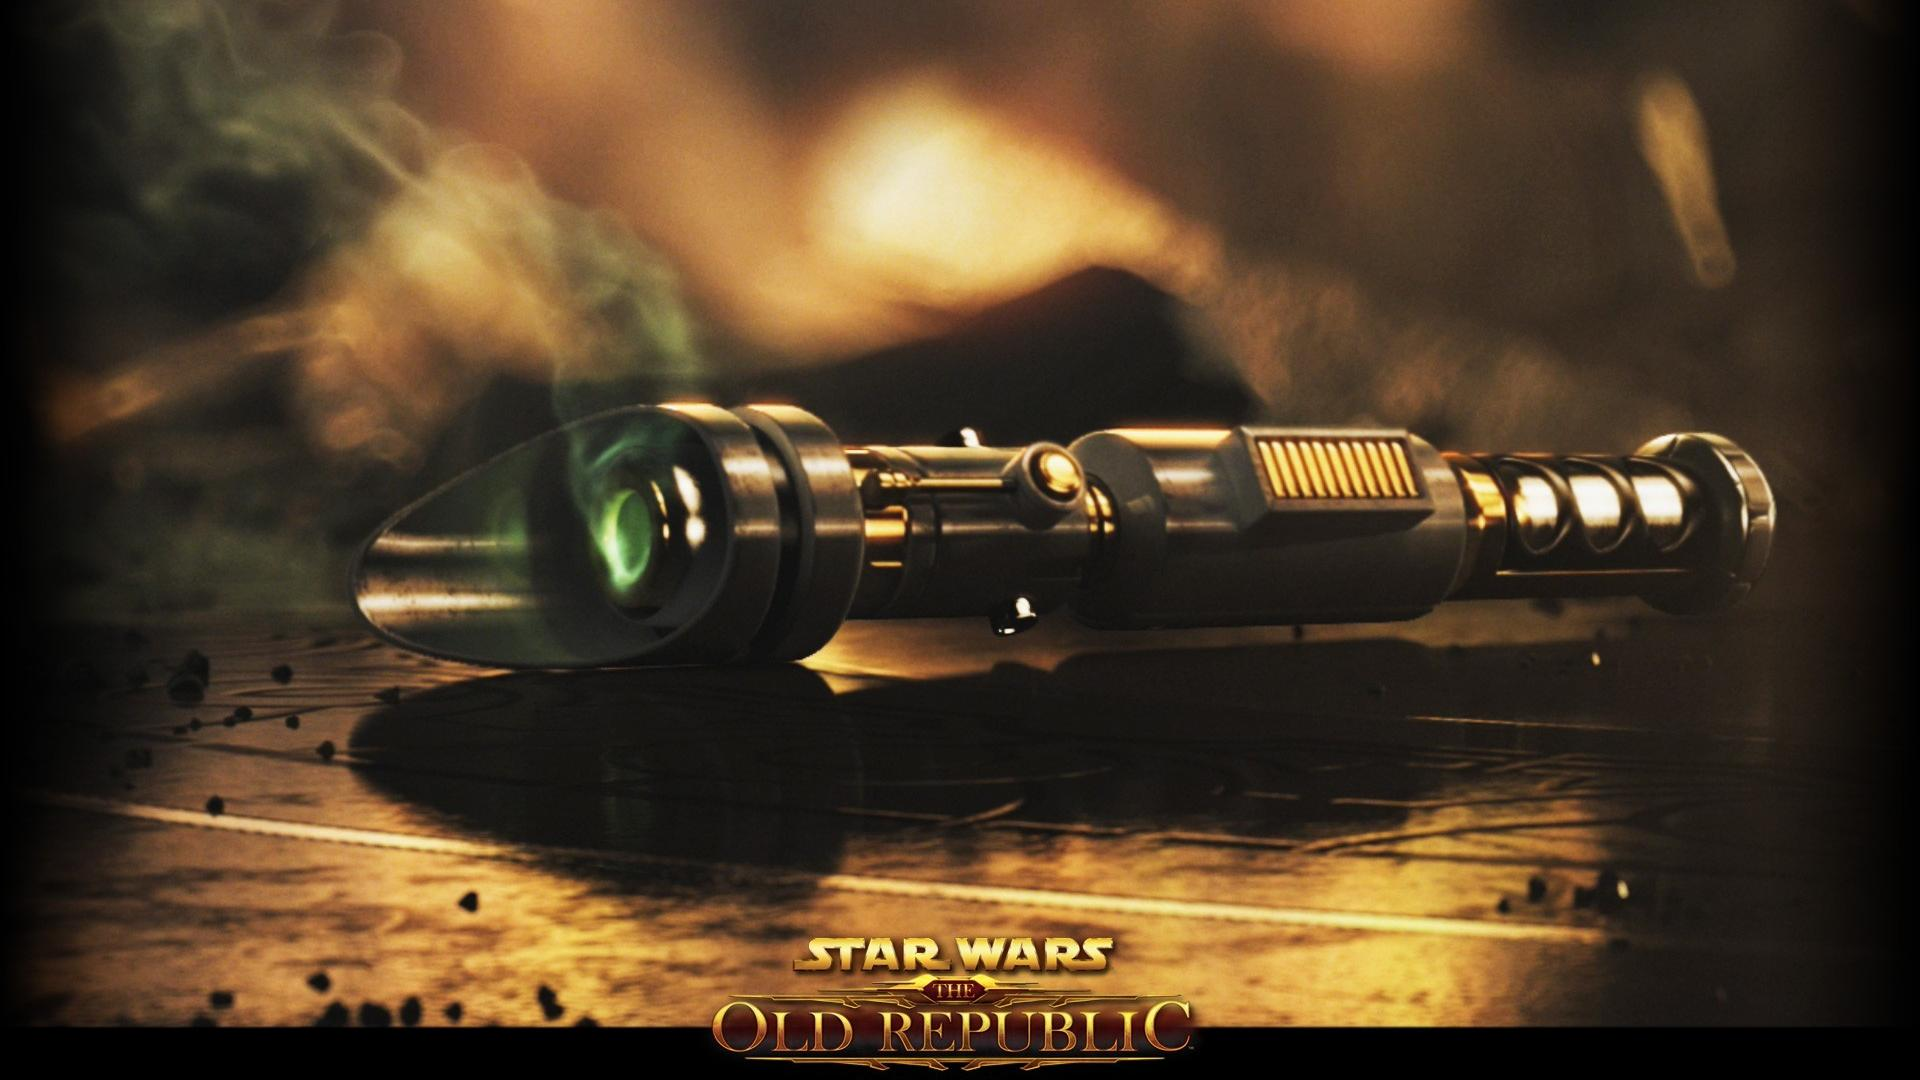 star wars the old republic wallpaper HD 1920x1080